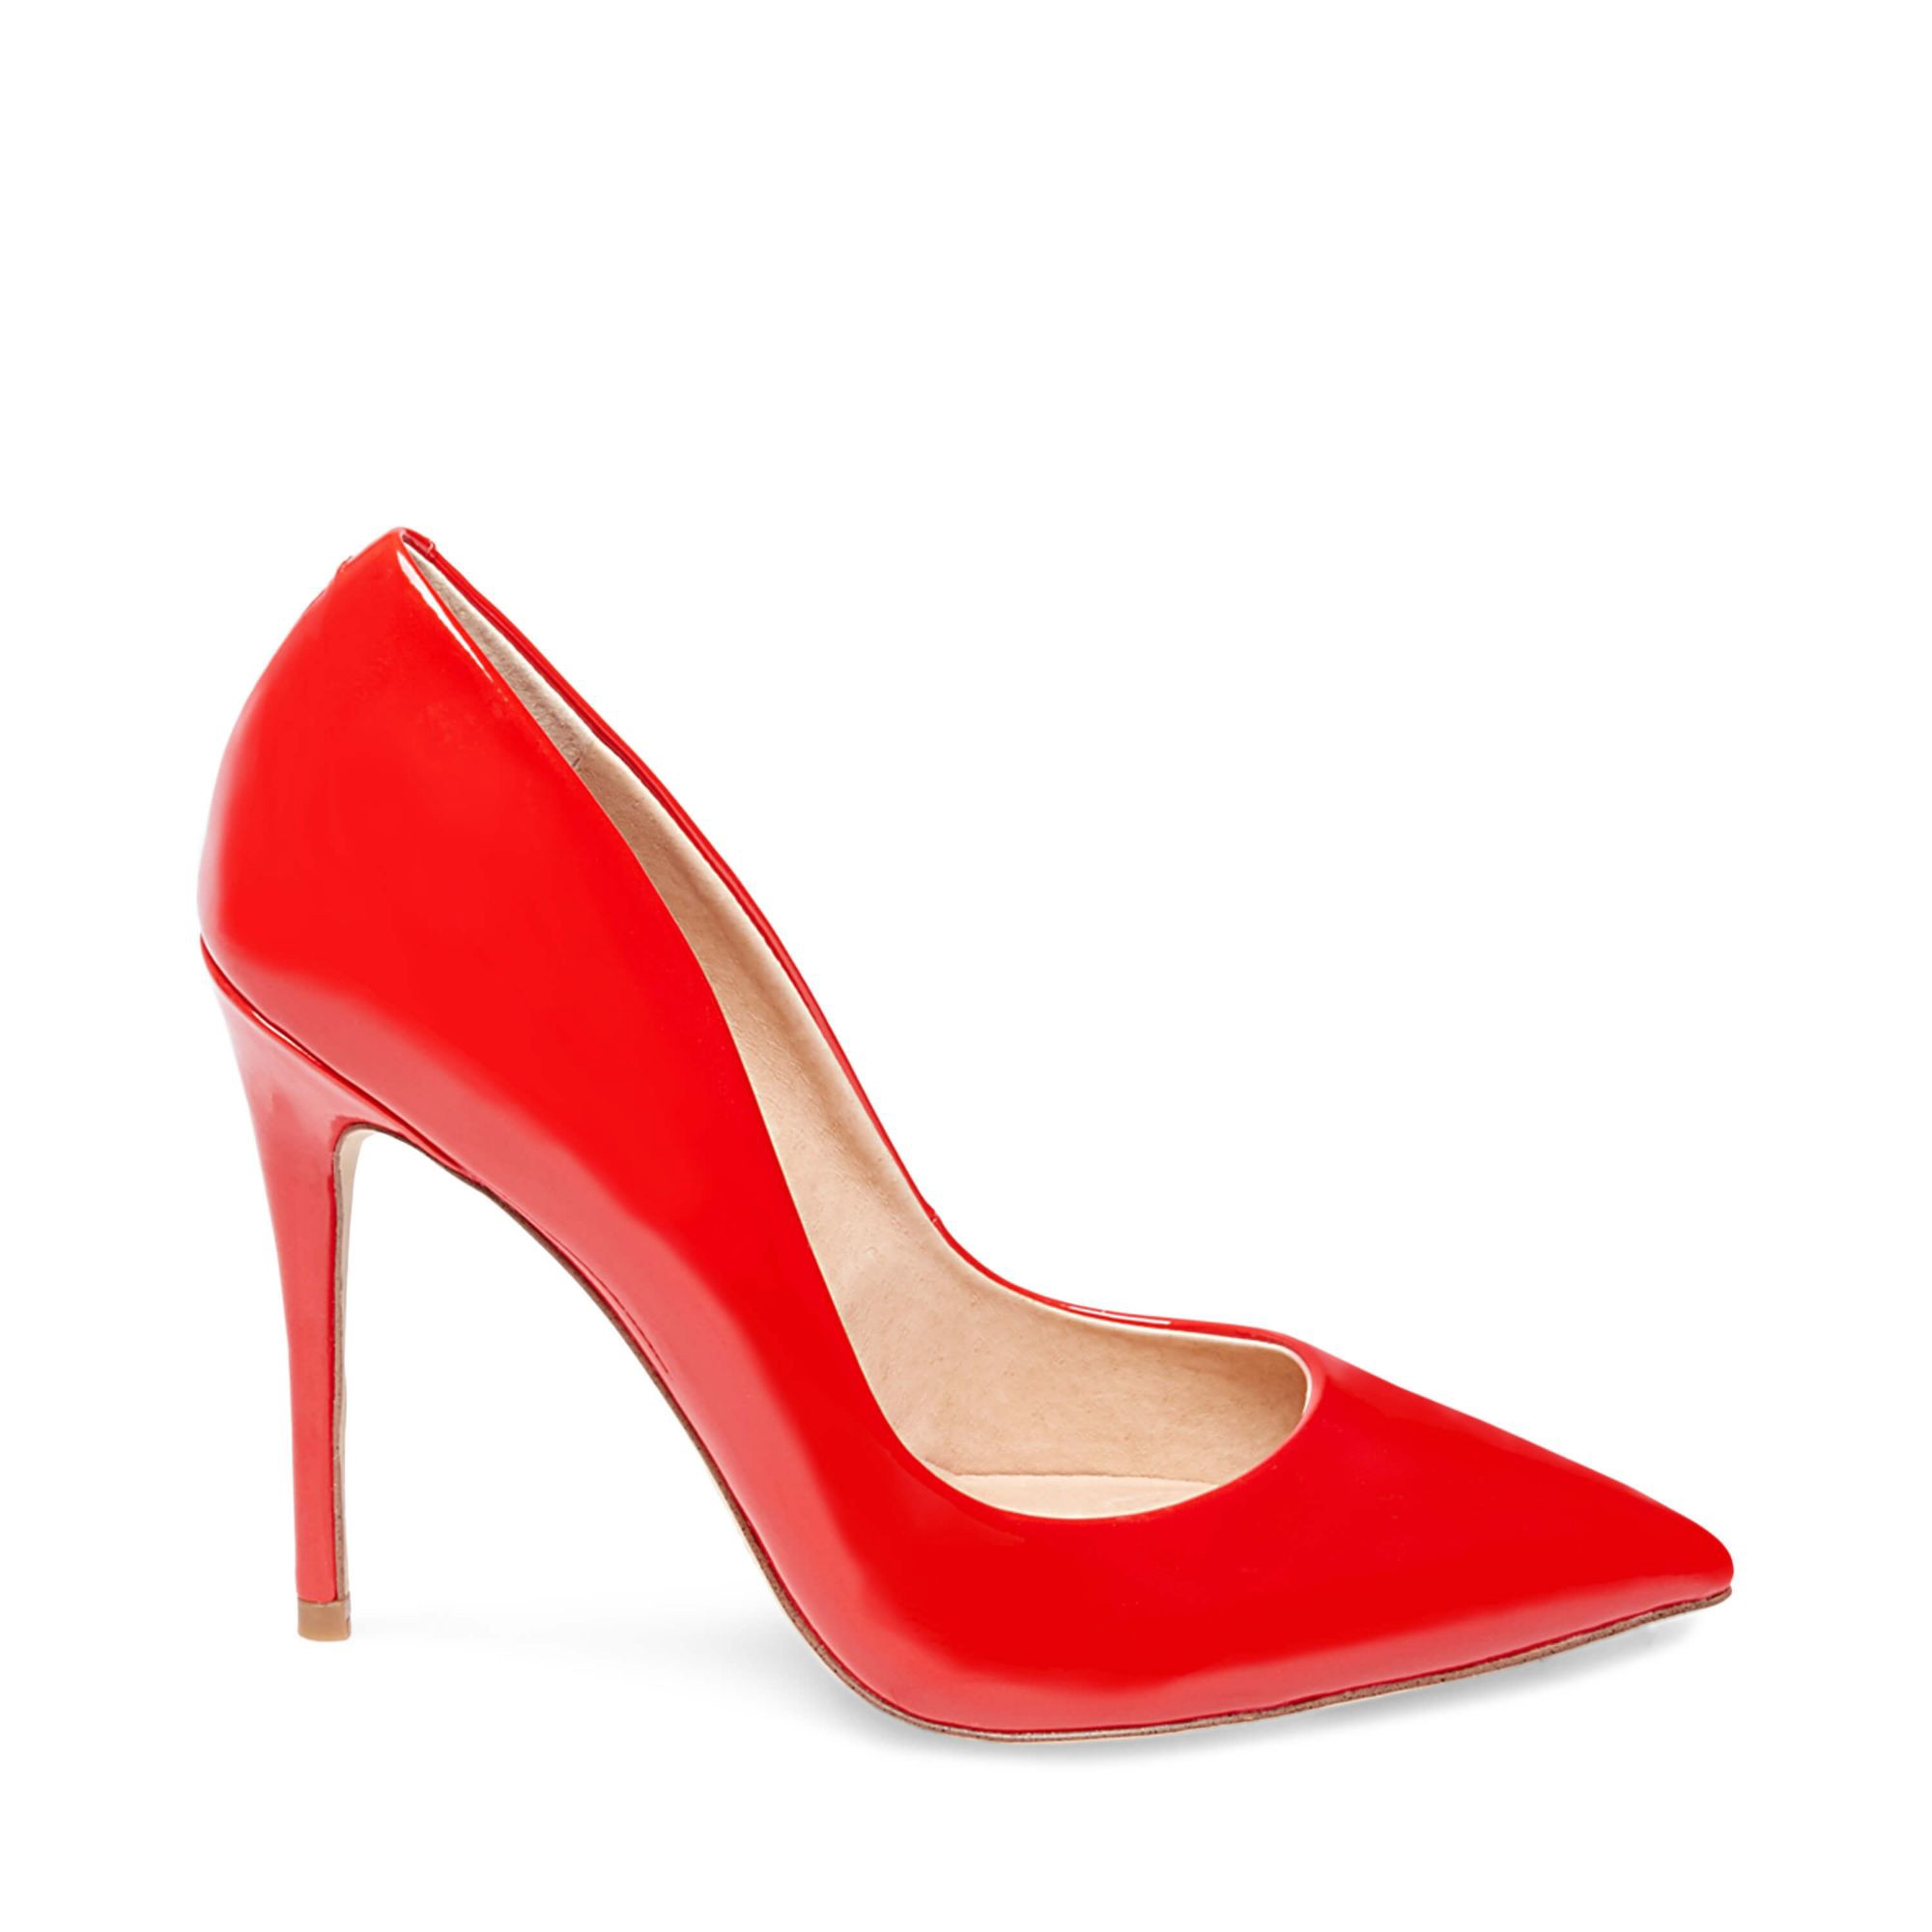 Steve Madden Daisie Patent Leather Courts In Red Patent